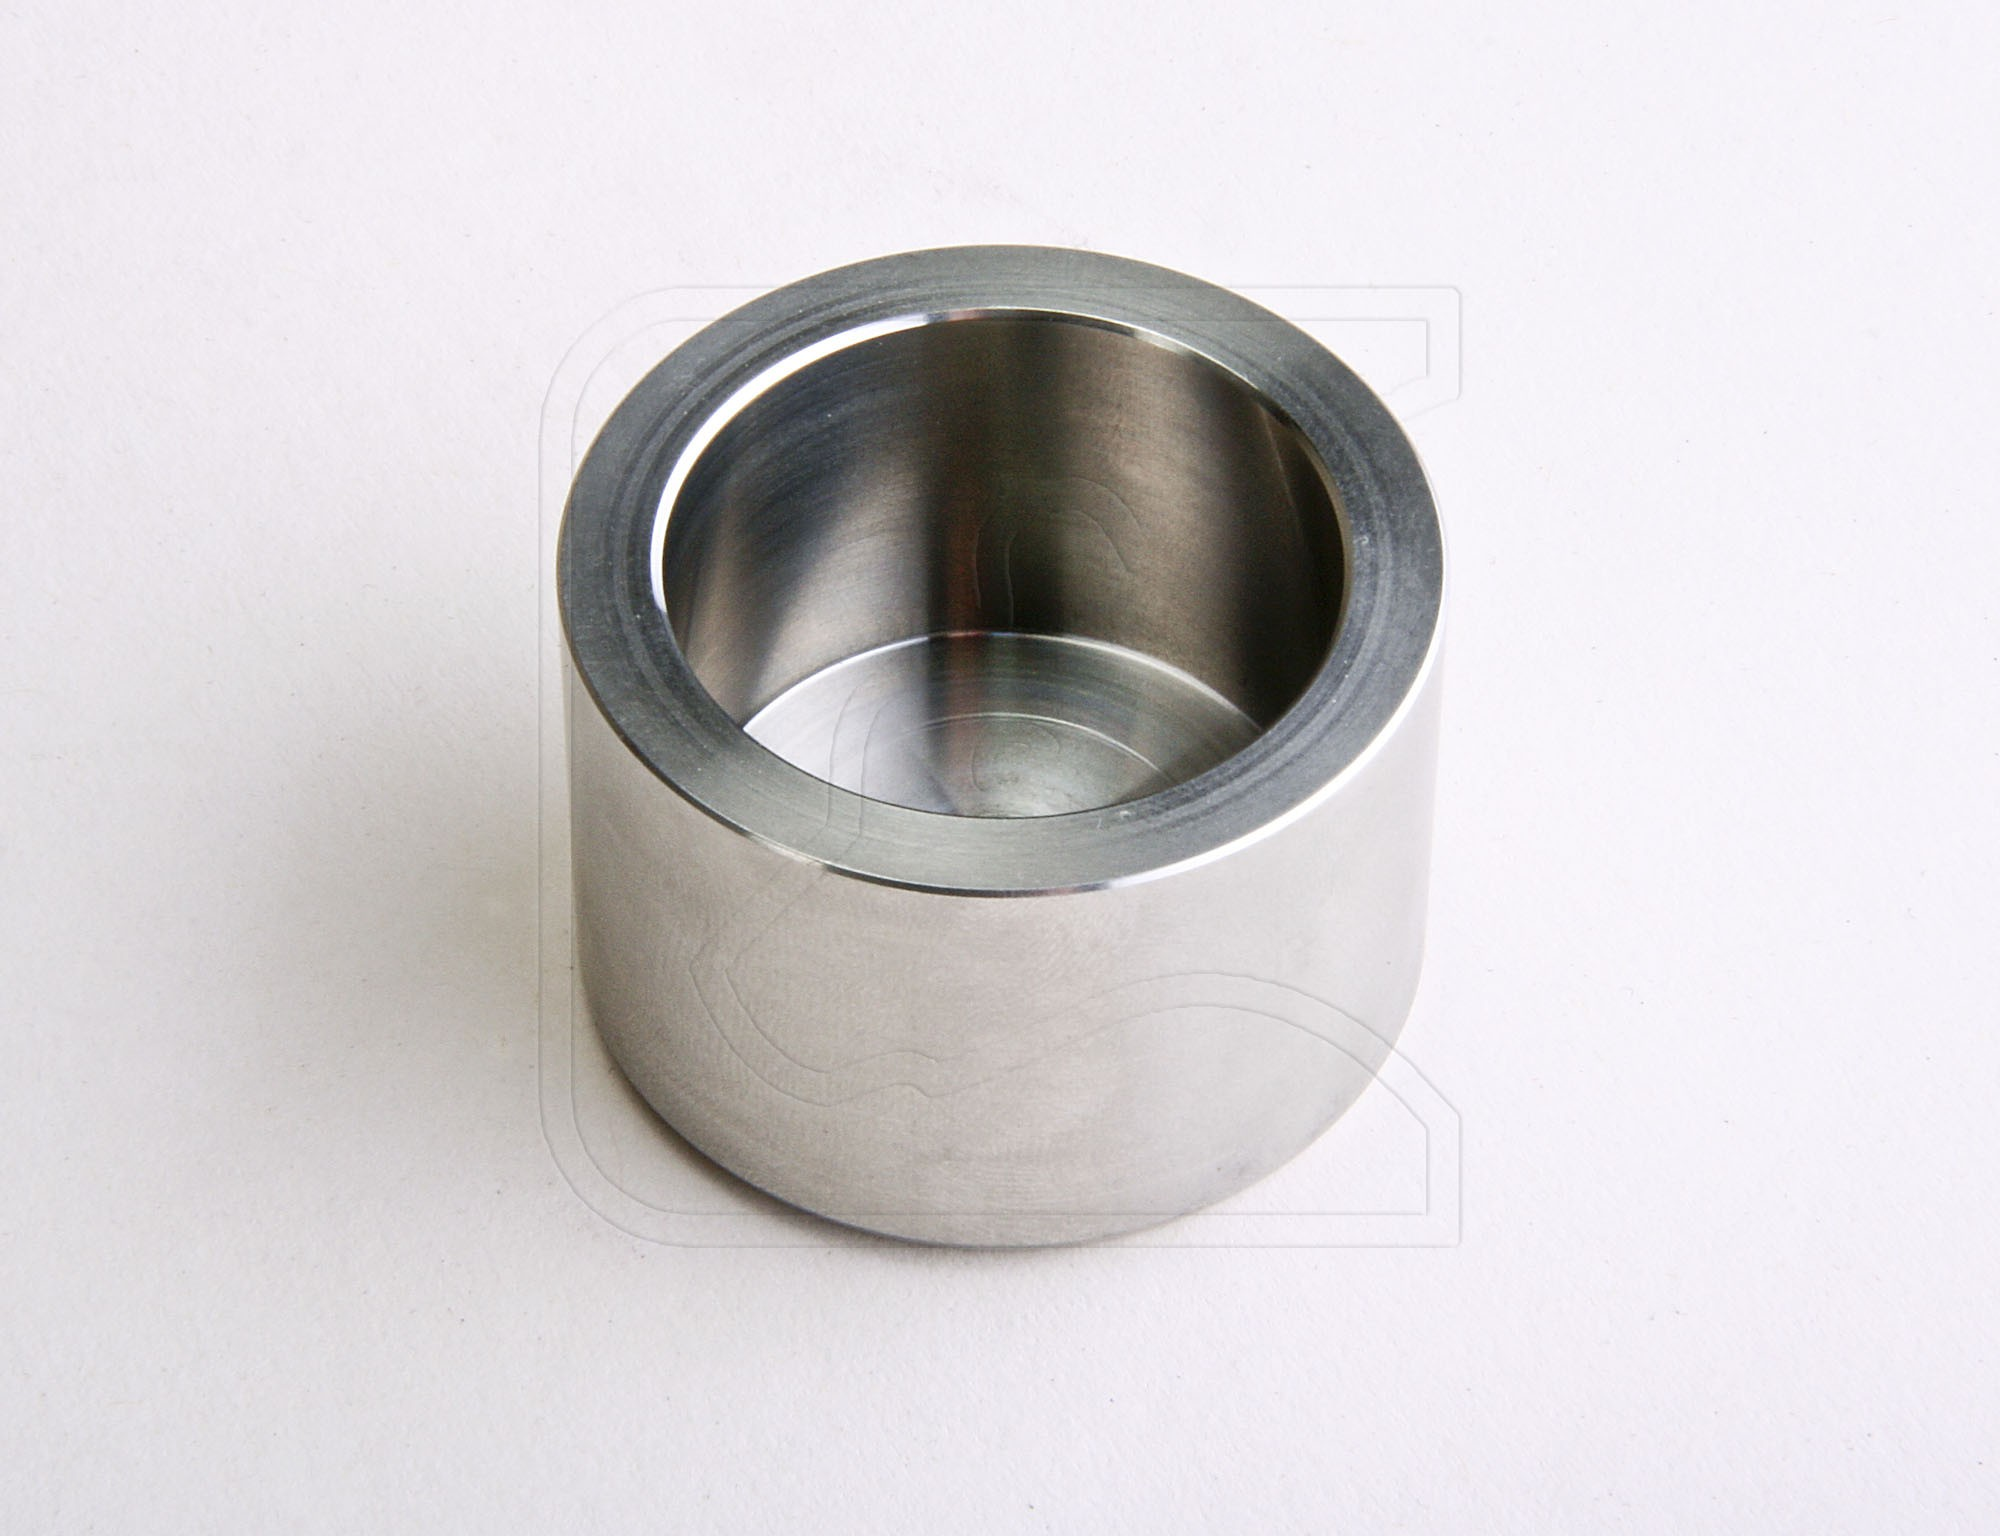 Stainless steel brake piston for Land Rover Defender - 41.2 x 28.4mm